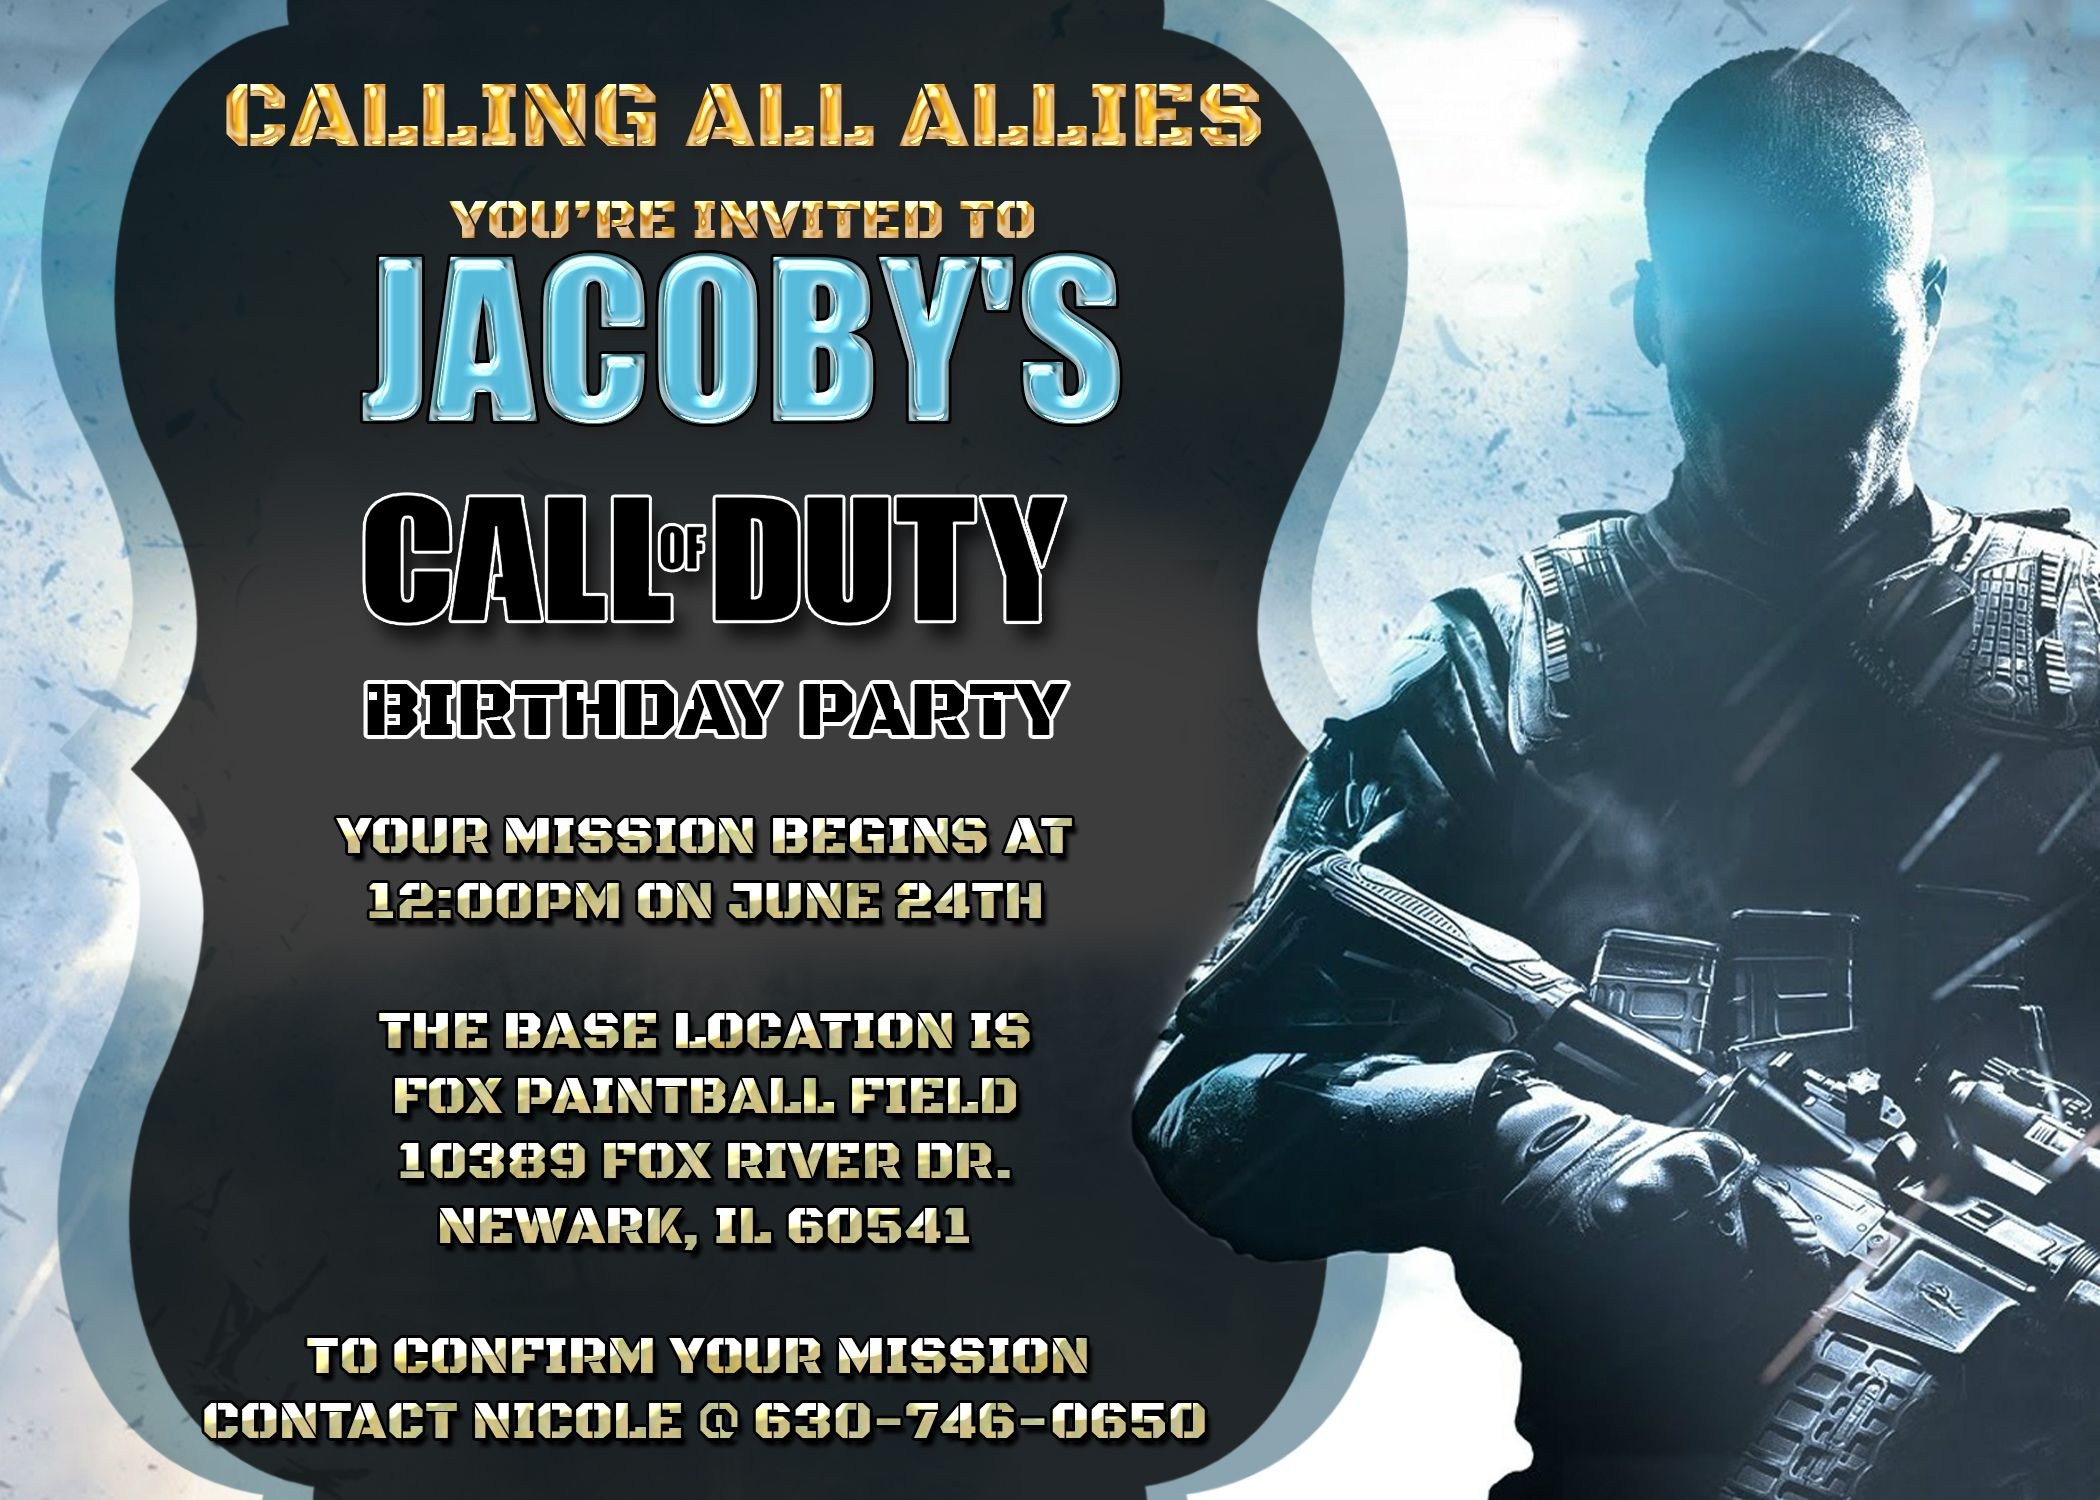 Call of duty invitation cod birthday party invite videogame invite call of duty invitation cod birthday party invite videogame invite editable printable filmwisefo Image collections